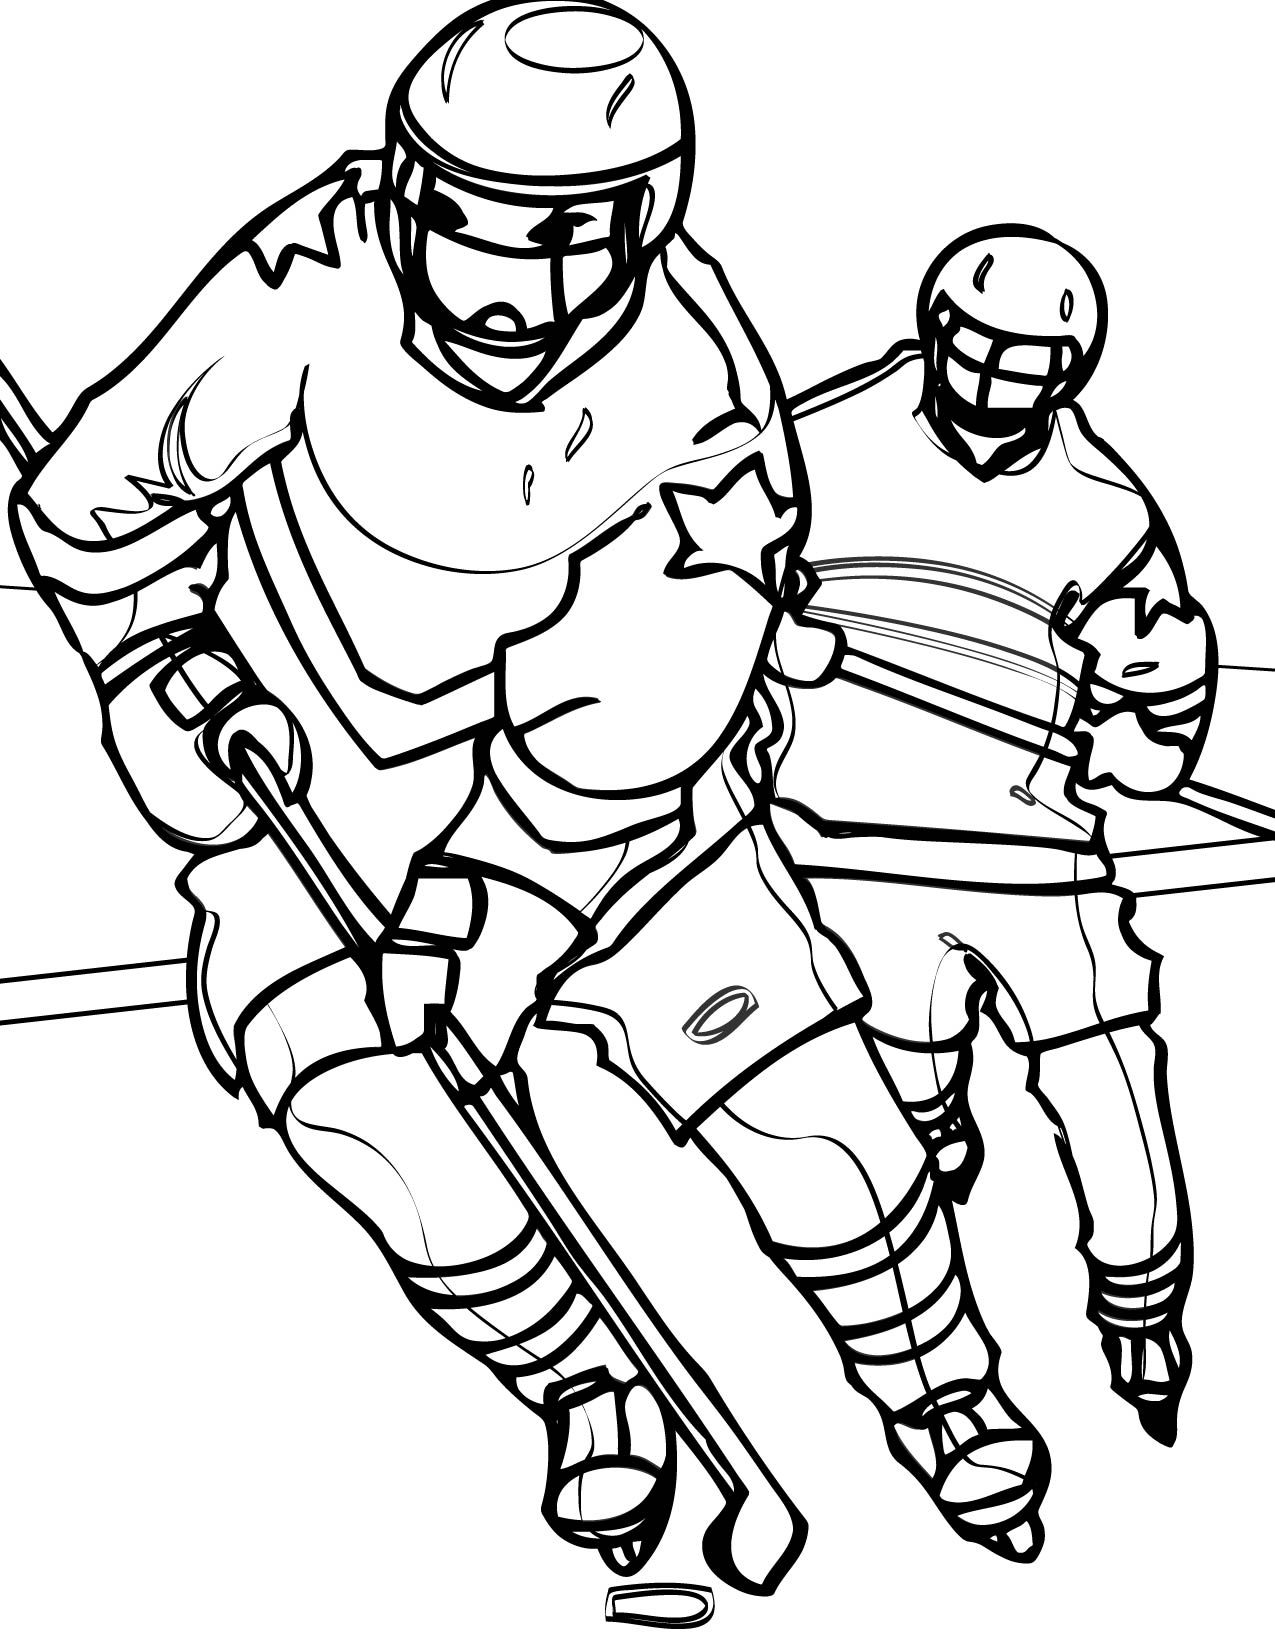 sports coloring pages - printable sports coloring pages